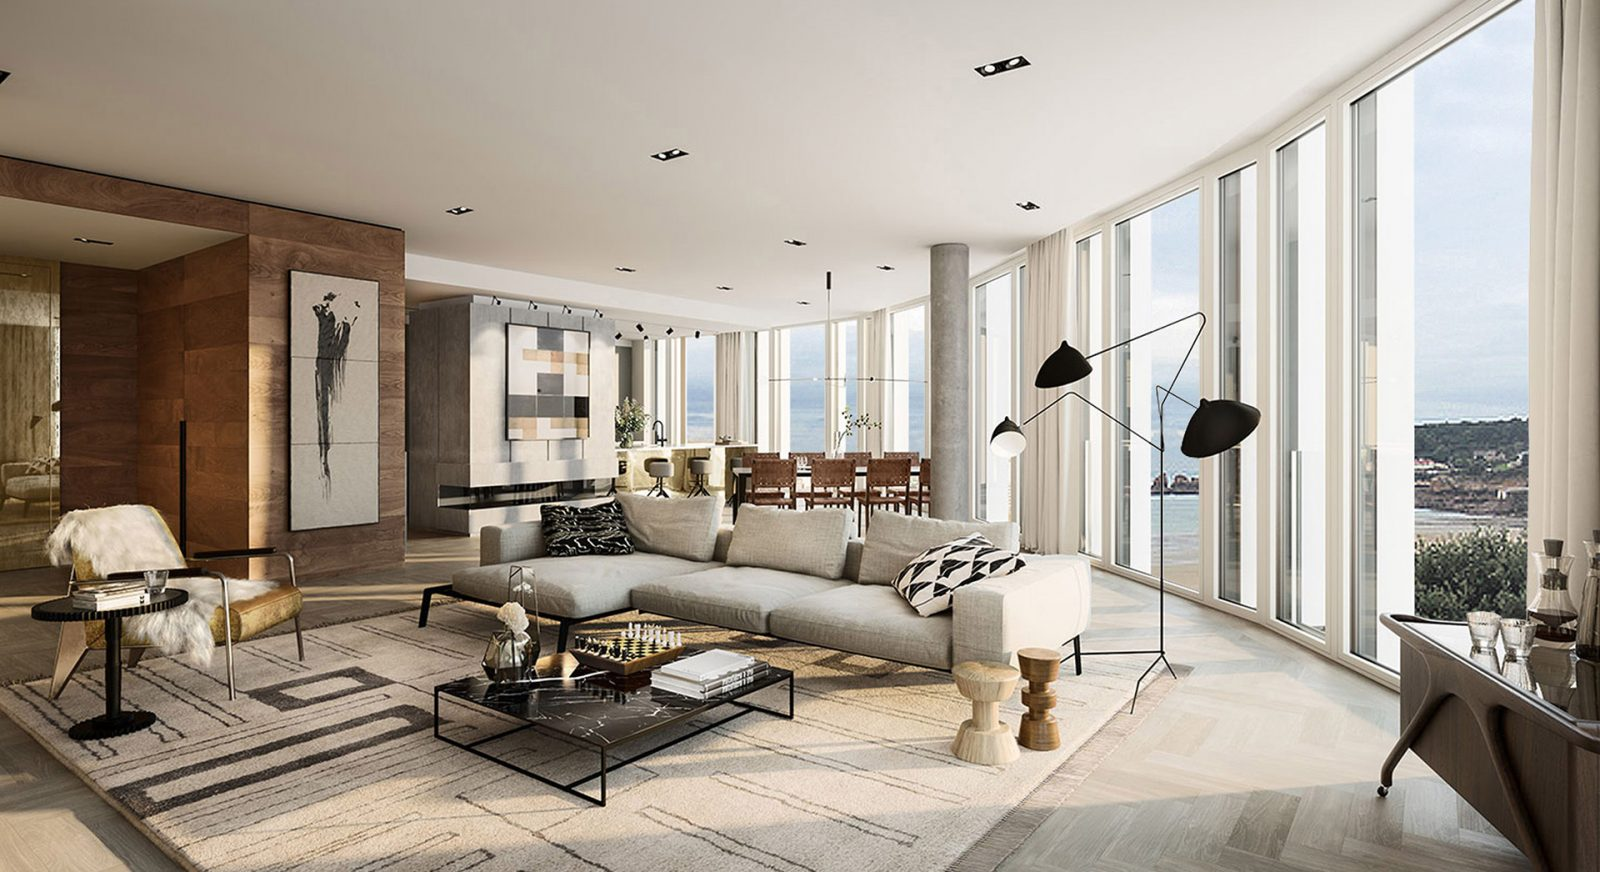 FT interiors st brelades bay modern hotel apartment building architecture architects jersey architects11